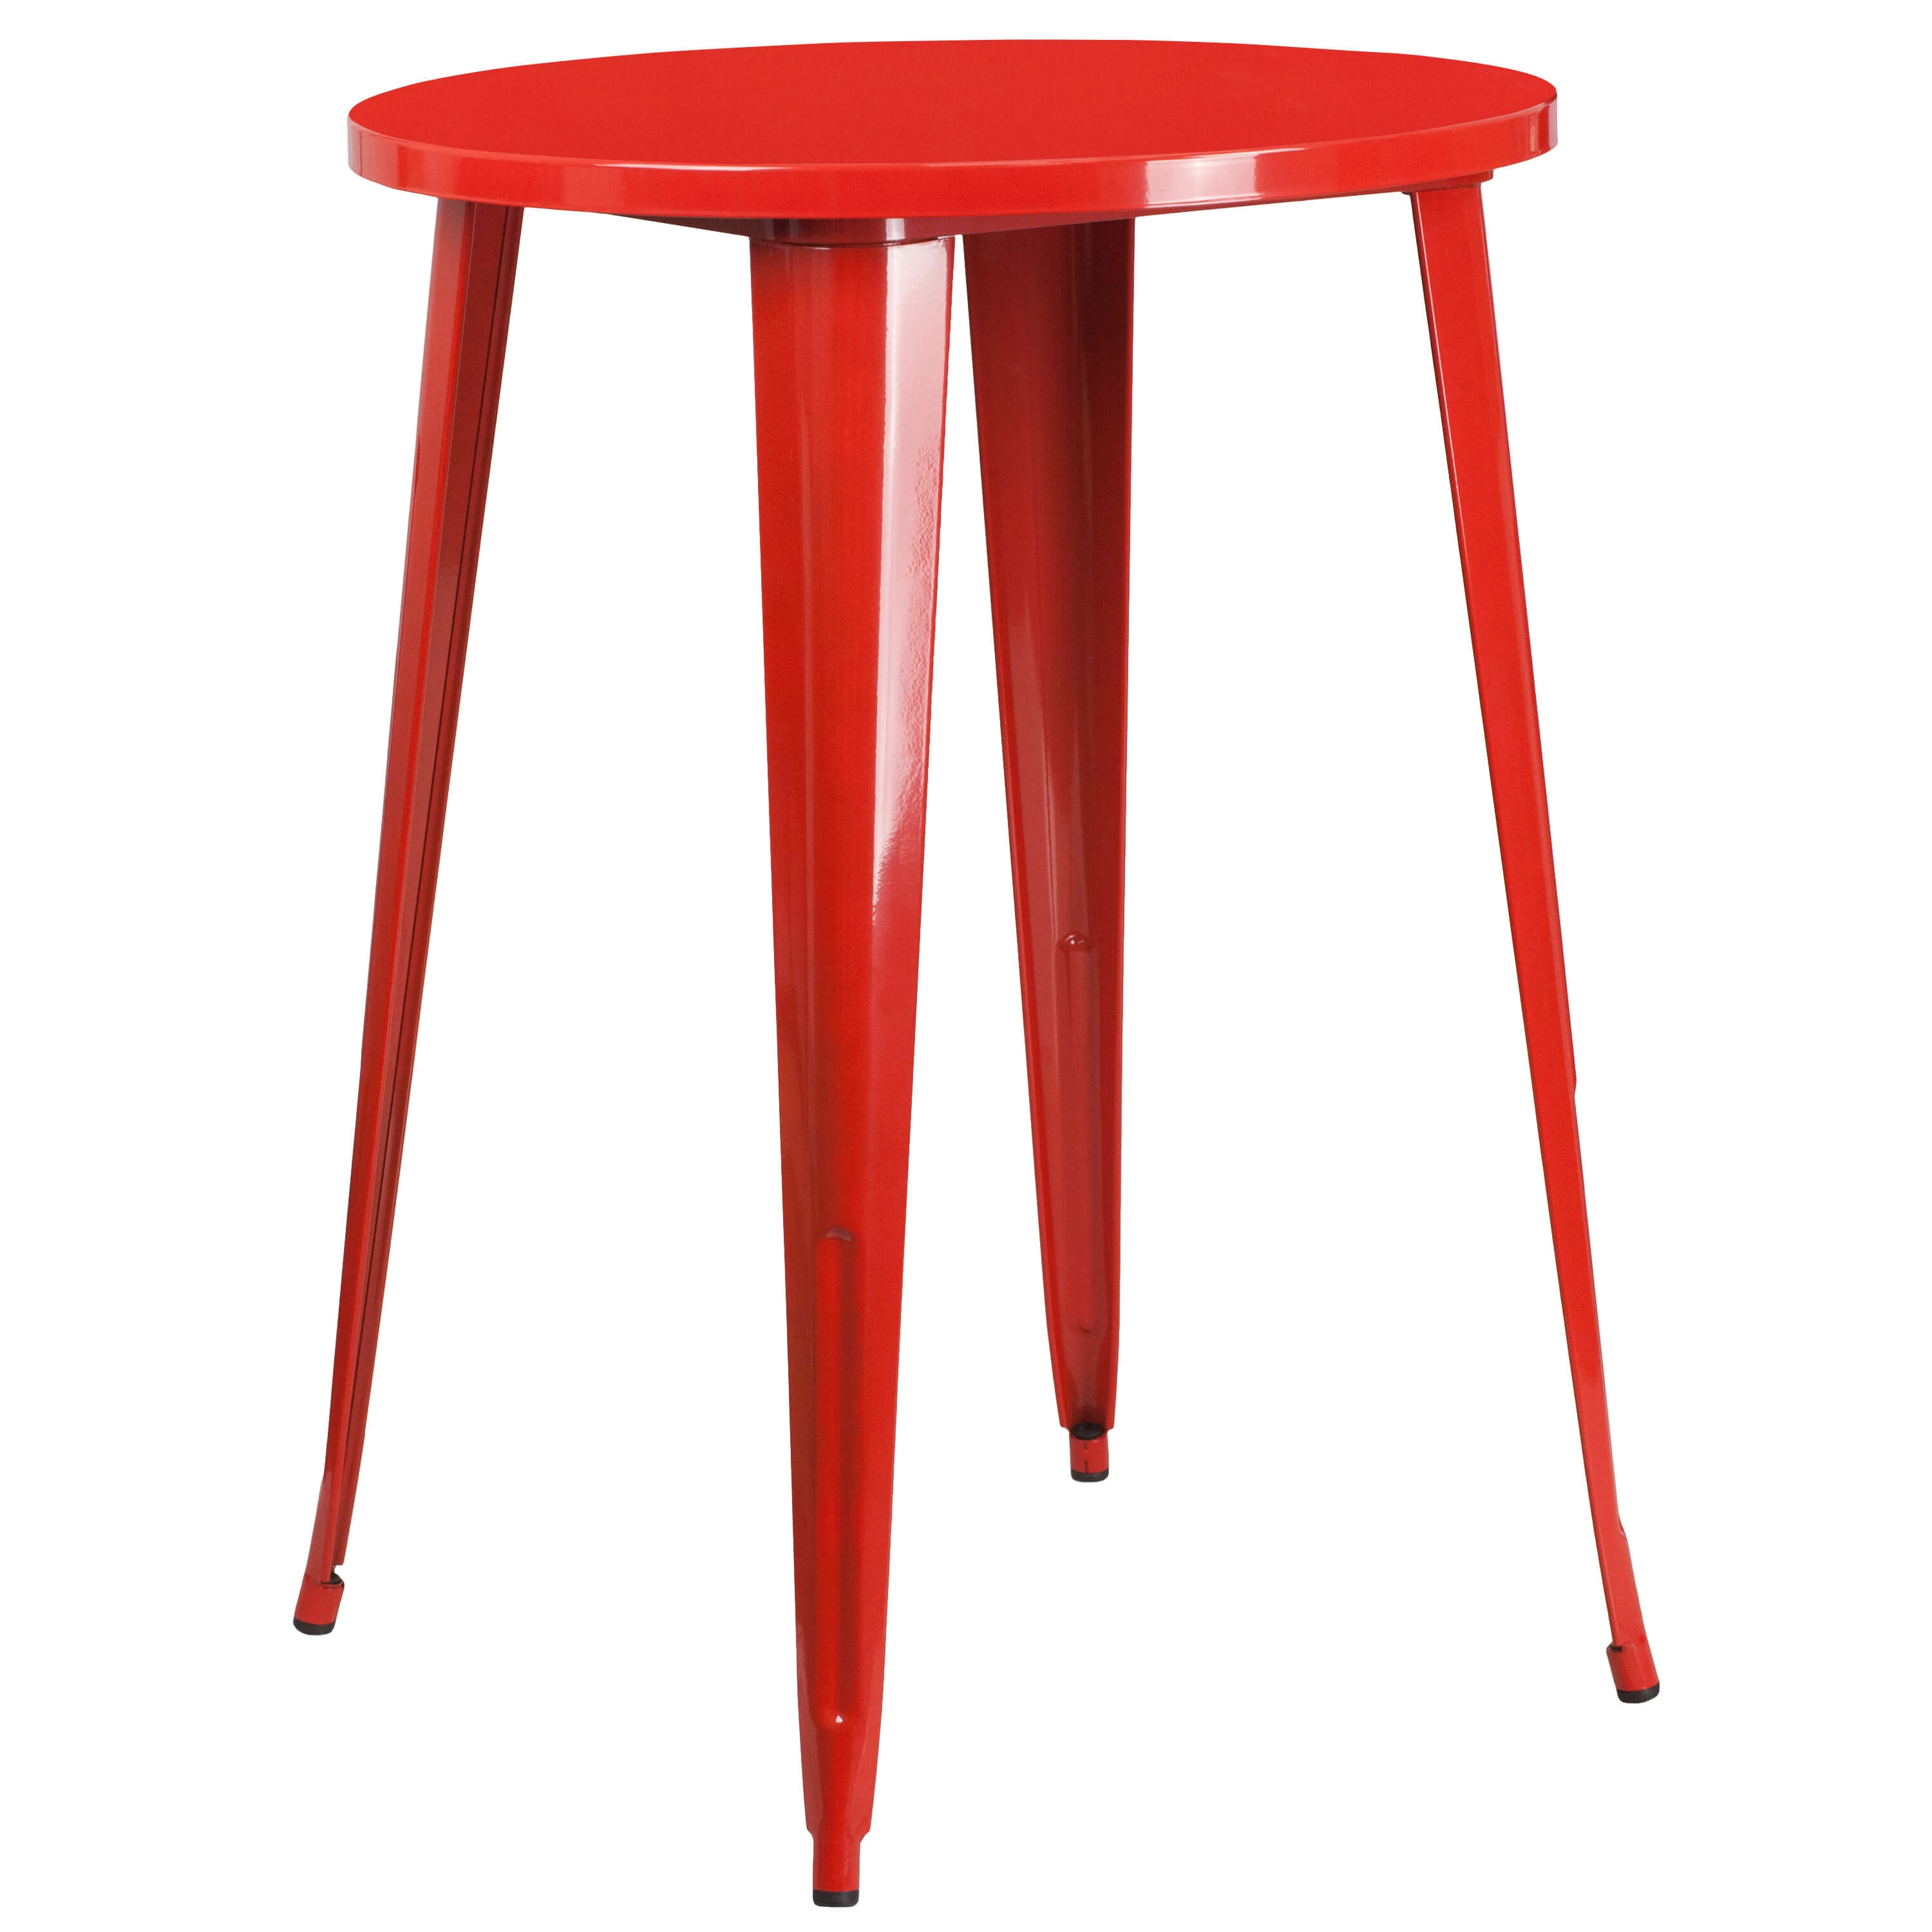 Cafe table CUB CH 51090 40 RED GG FLA